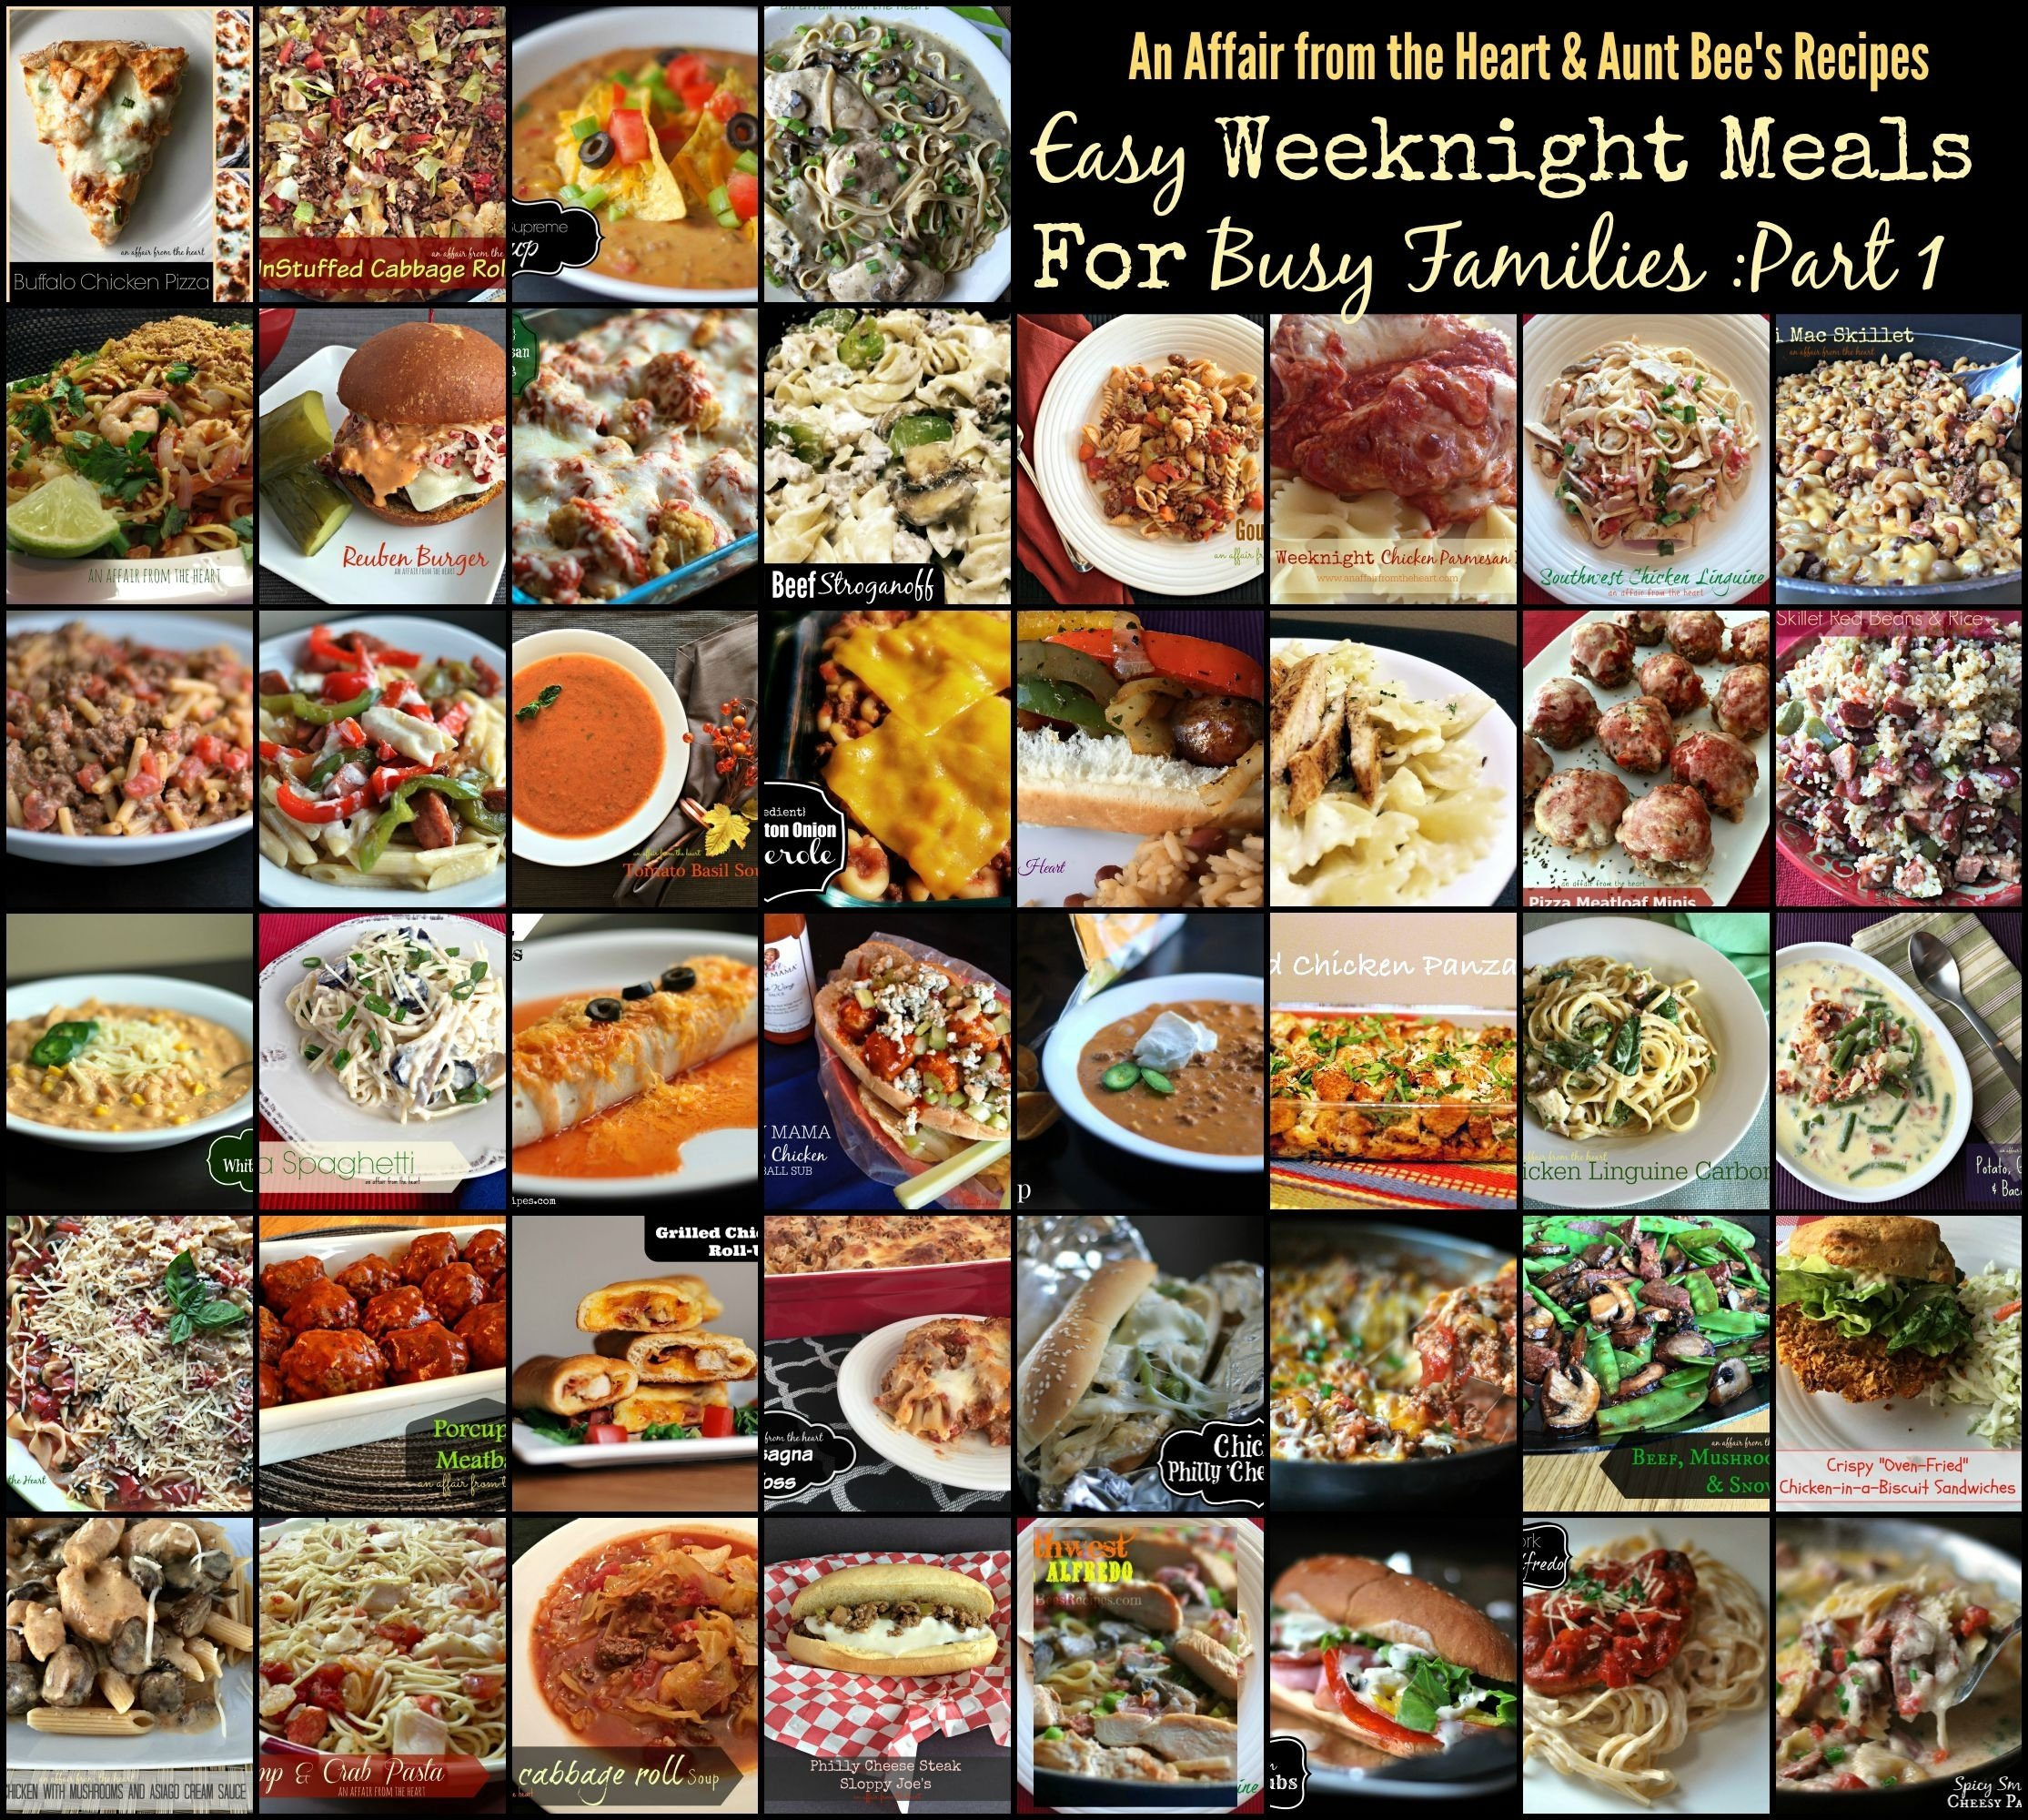 10 Unique Weeknight Dinner Ideas For Families easy weeknight meals for busy families part one an affair from 1 2021